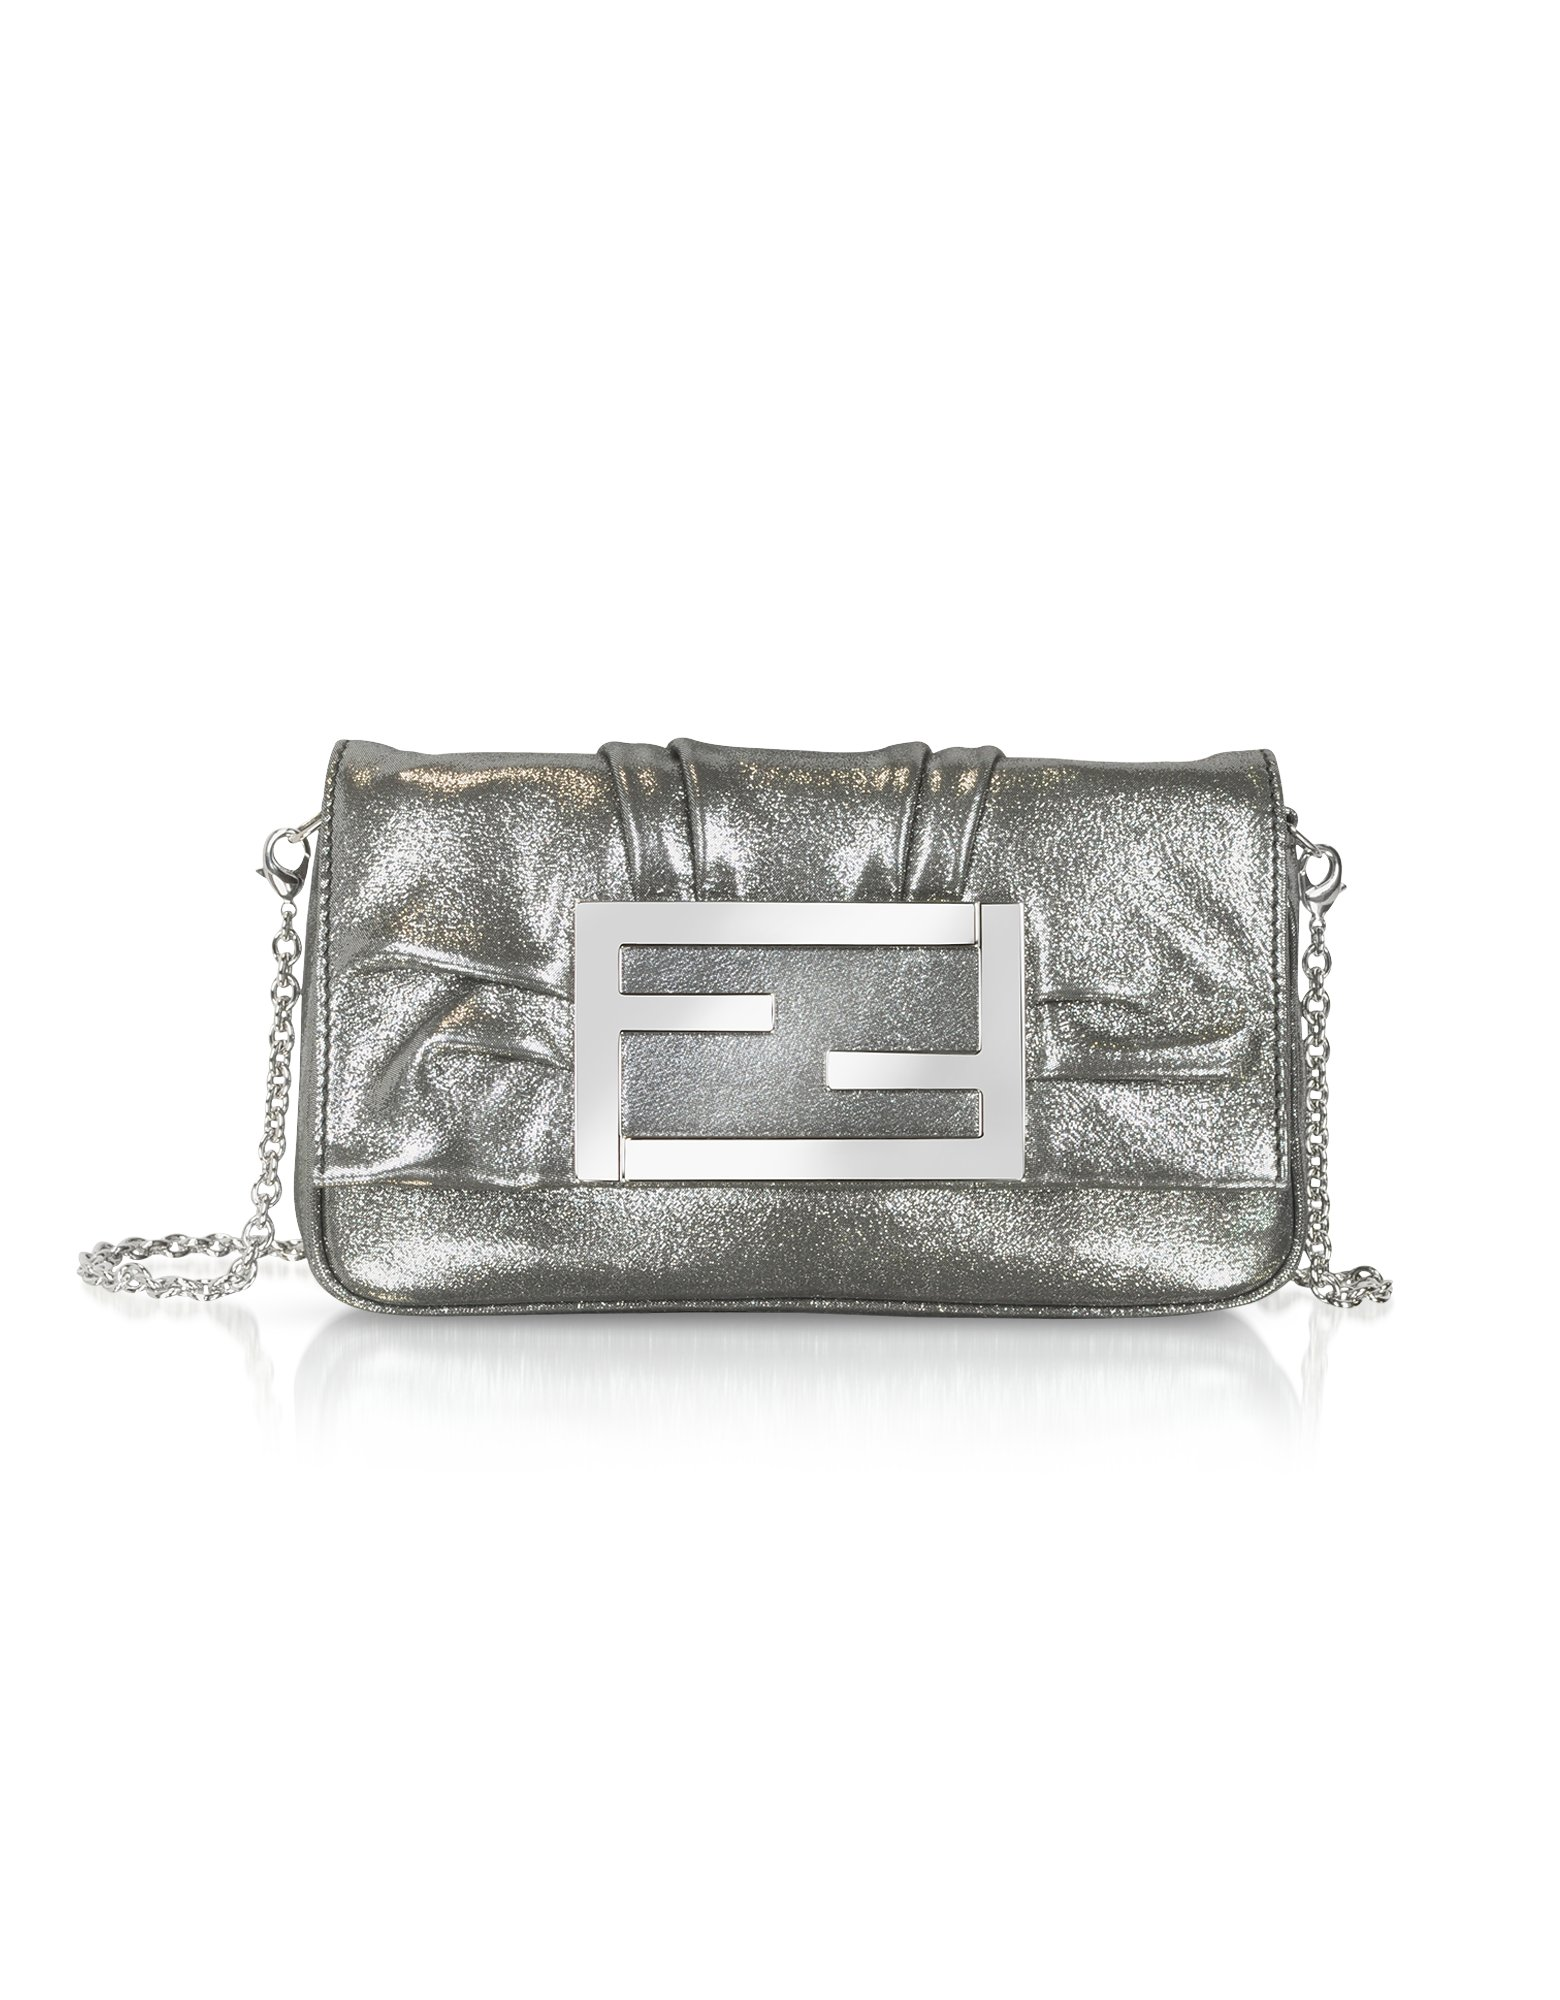 ... Lyst - Fendi Mia - Laminated Leather Small Baguette Bag Wcha the best  attitude 85a30 b7c56 ... fb83988a220b1